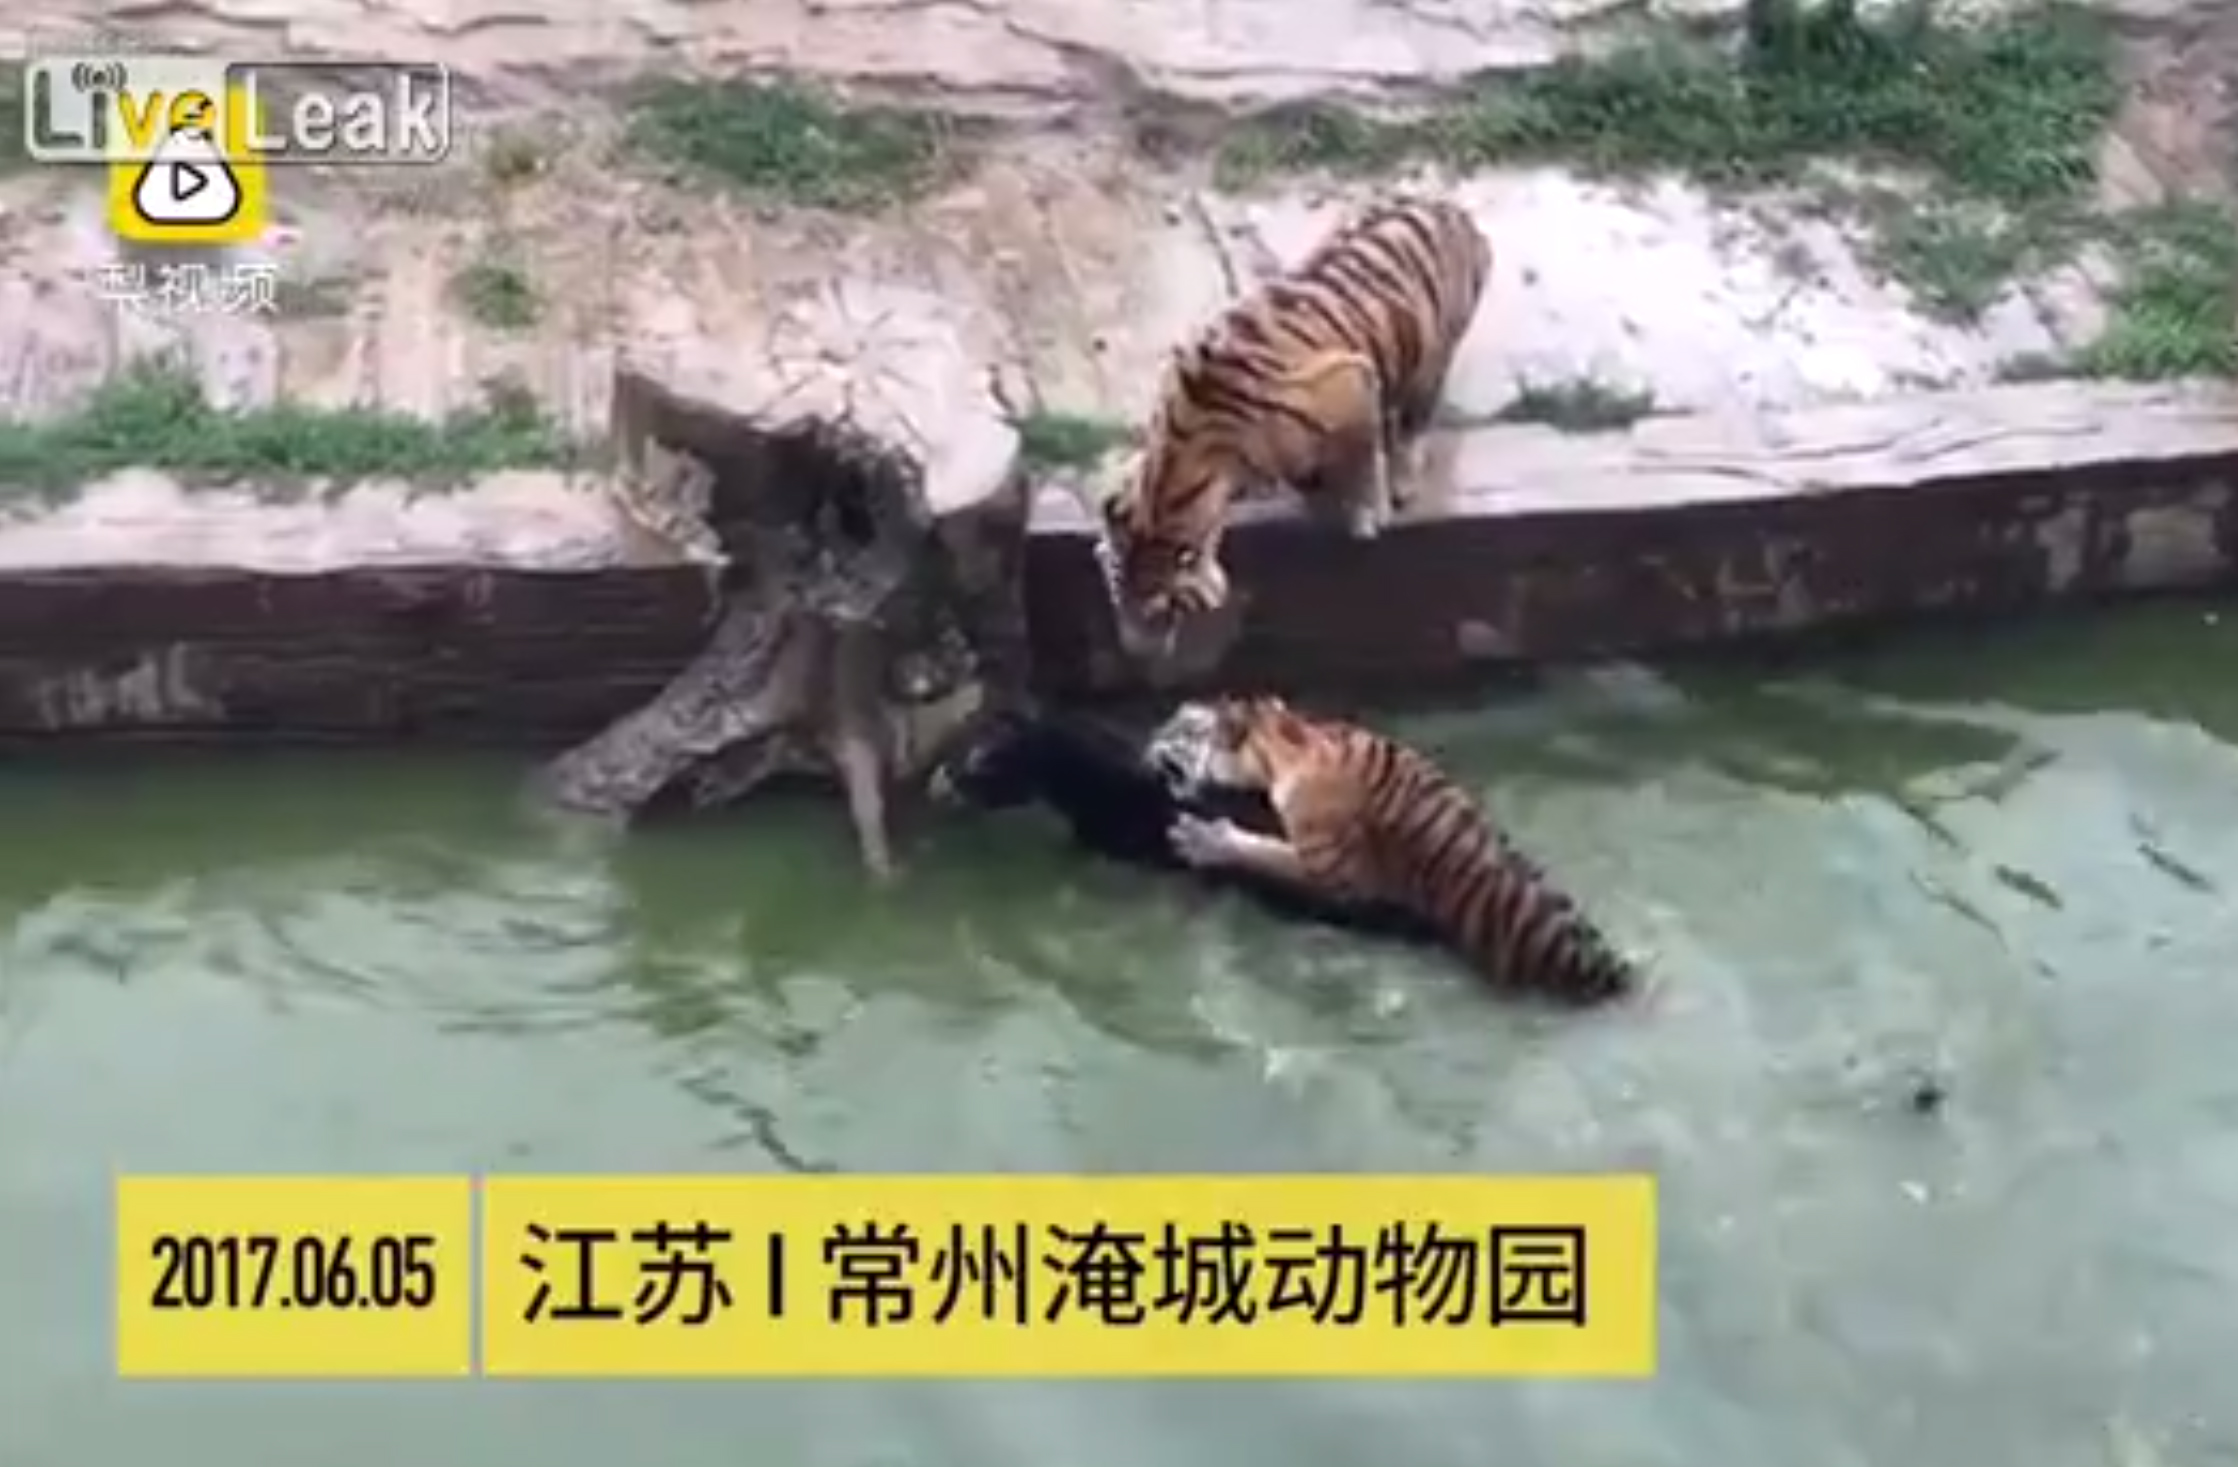 Angry Dissenters >> Angry Chinese zoo investors feed donkey to tigers - Bombthrowers